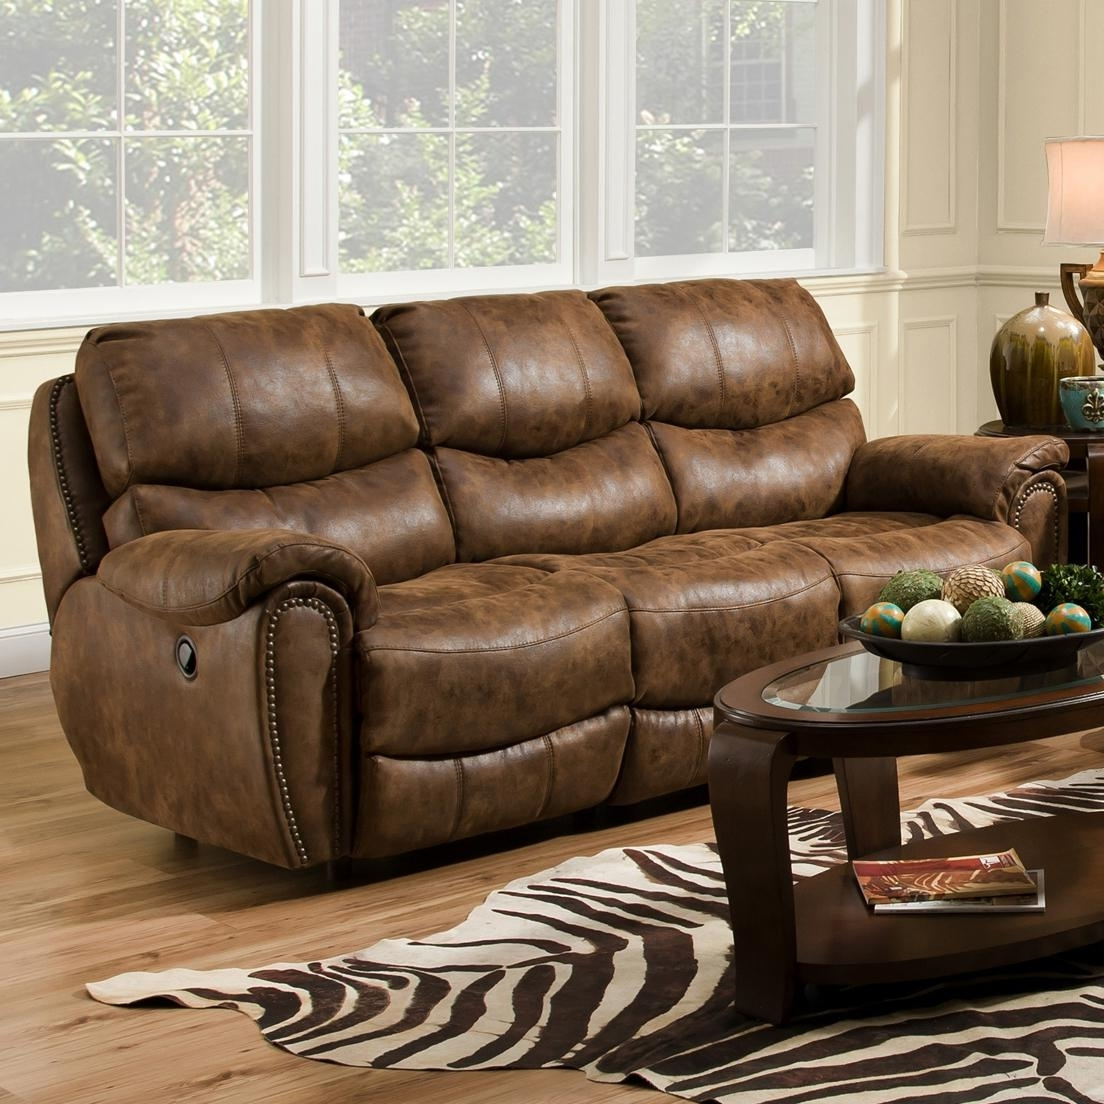 Widely Used Richmond Sofas With Regard To Reclining Sofa With Nail Head Trim – Richmondfranklin – Wilcox (View 8 of 15)